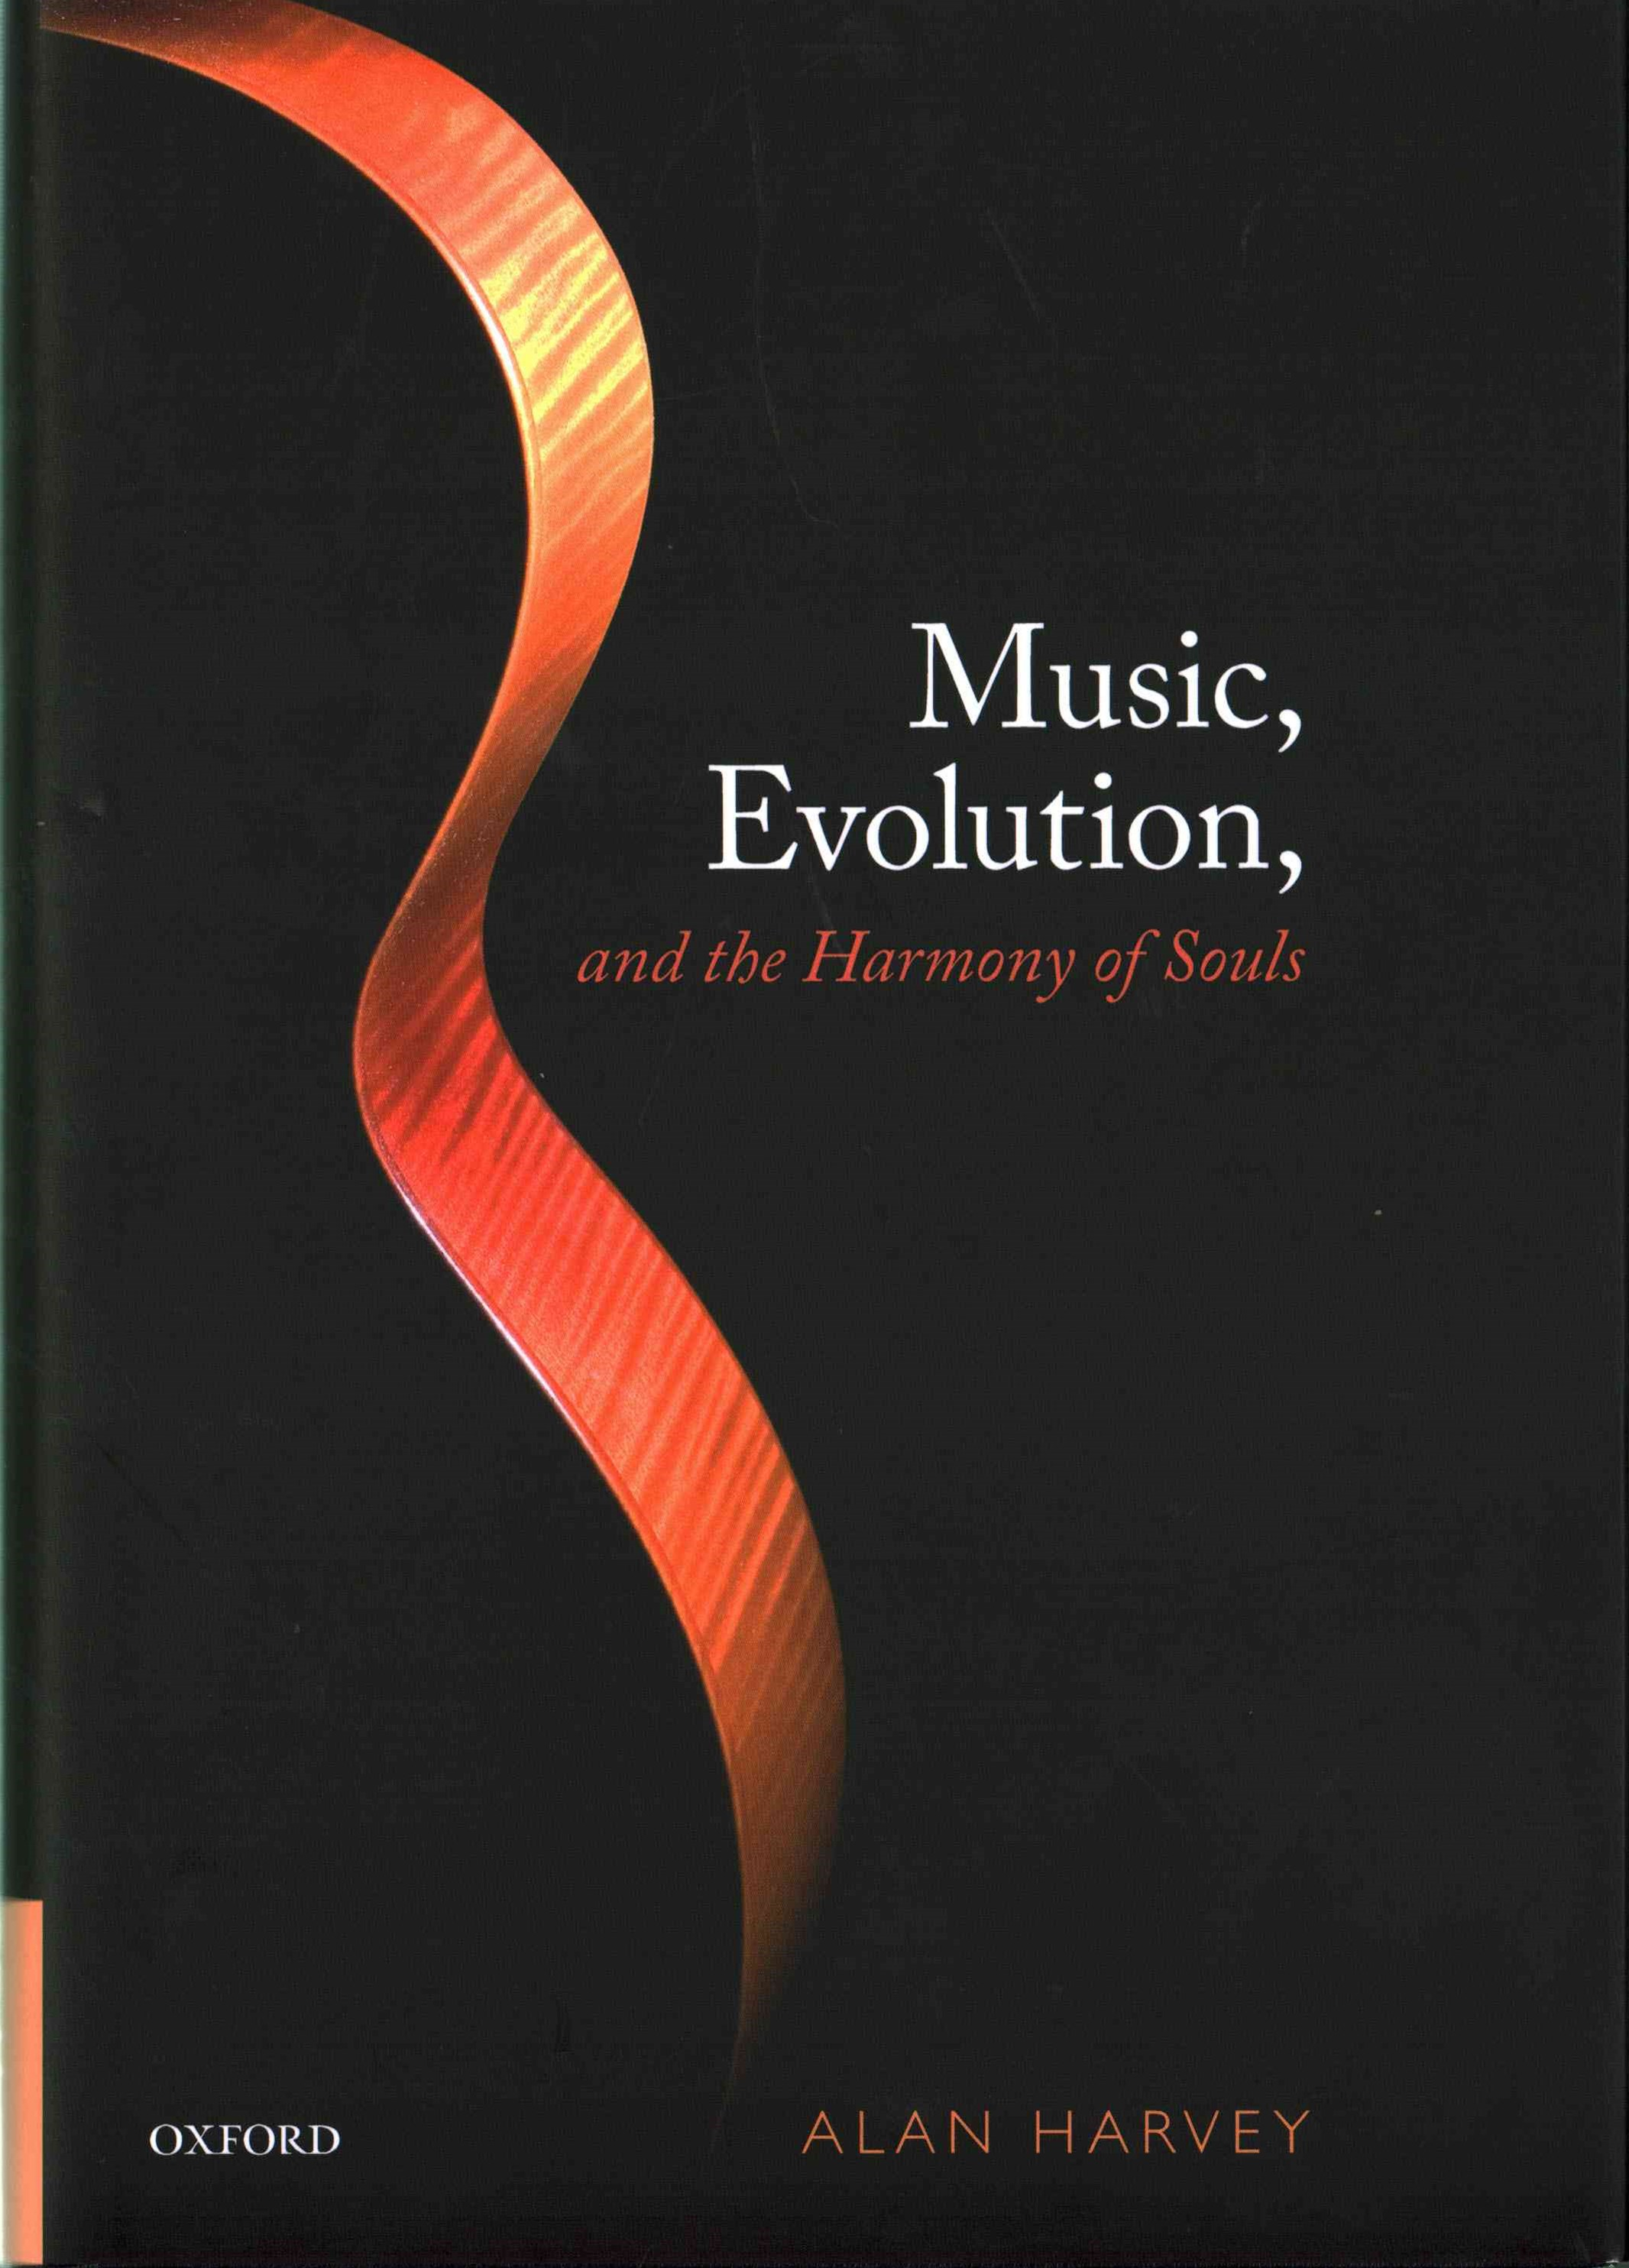 Music, evolution, and the harmony of souls